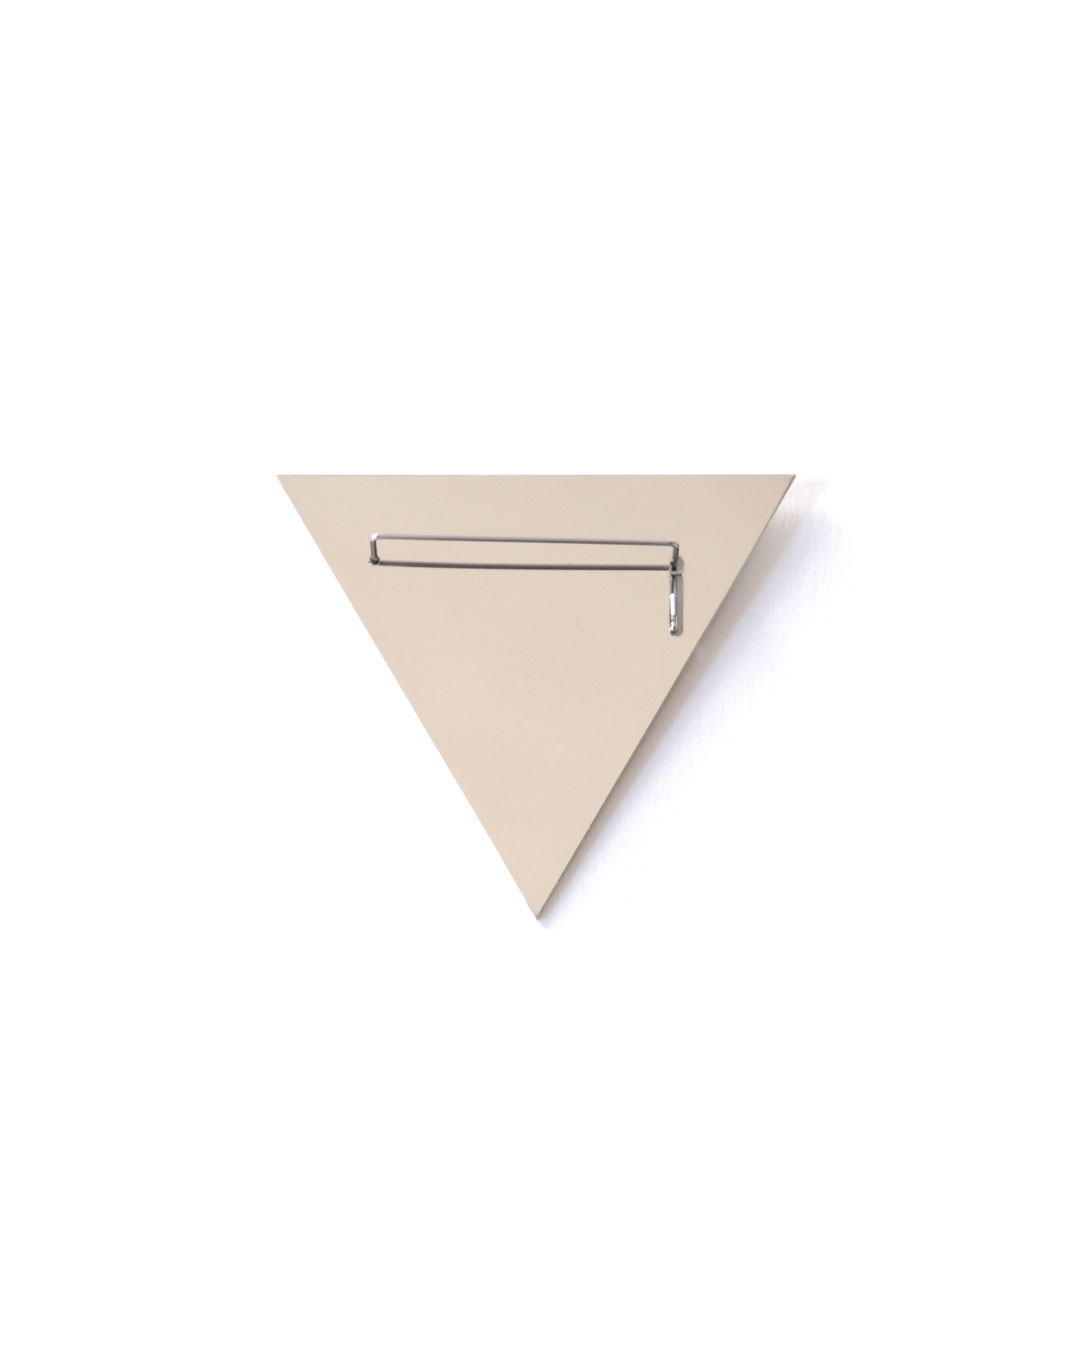 Junwon Jung, Pin and Mirror, 2015, brooch, steel, 60 x 60 mm, €490